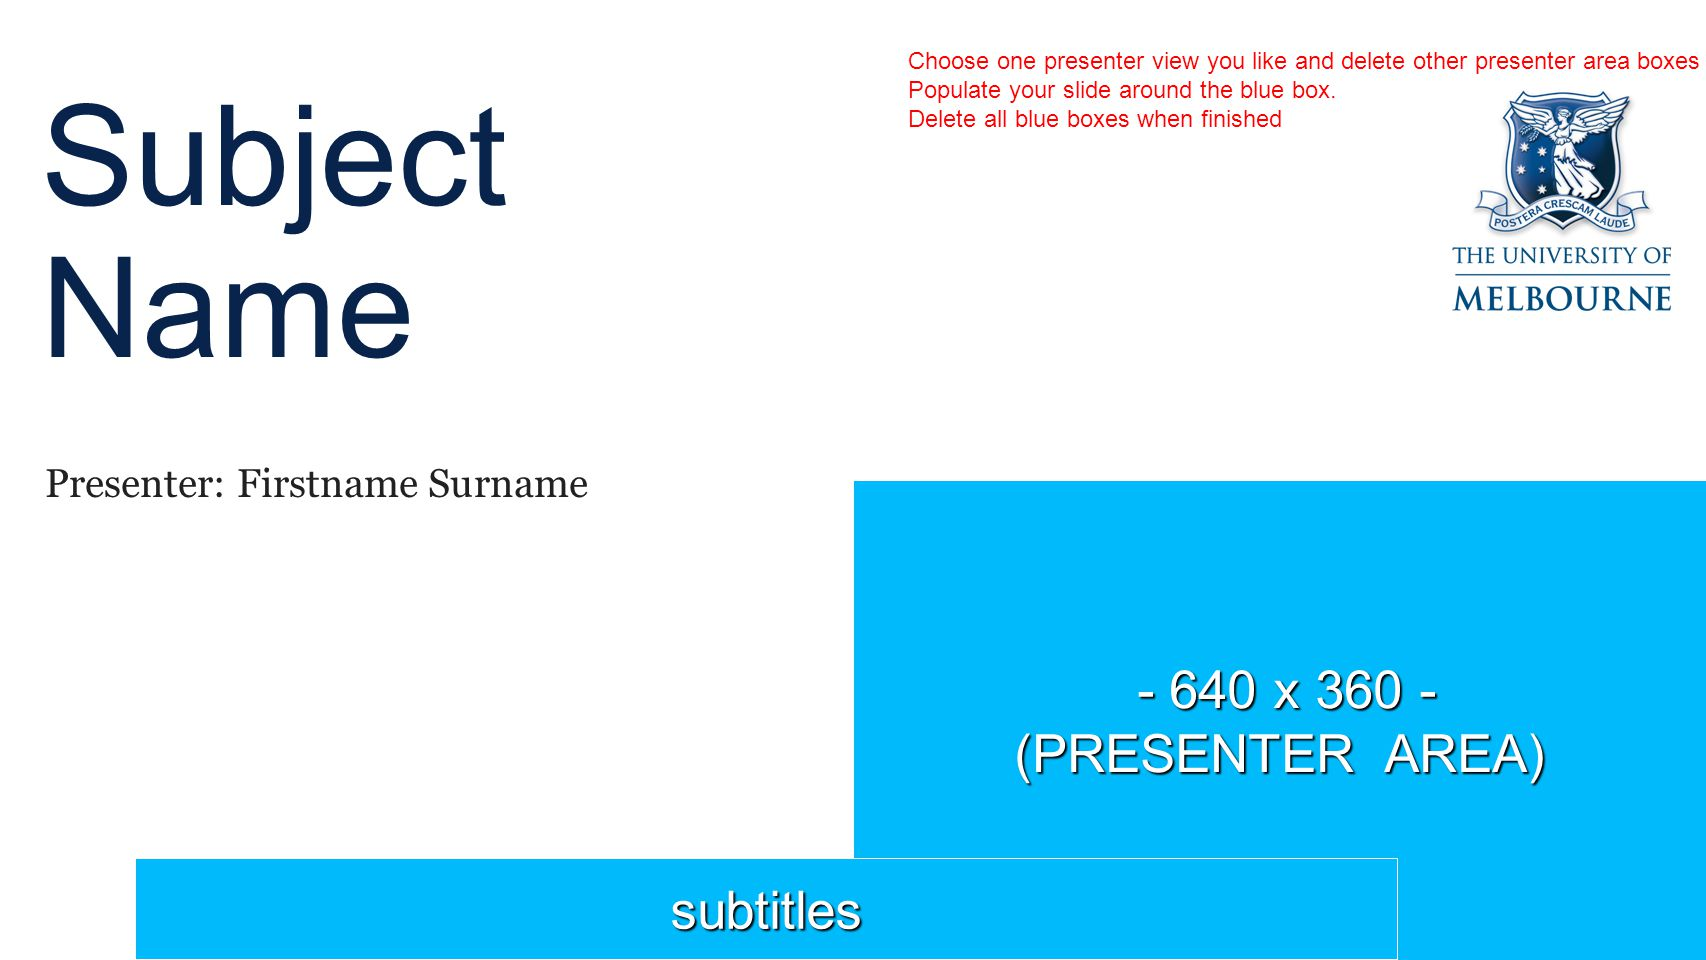 - 640 x x (PRESENTER AREA) Subject Name Presenter: Firstname Surname subtitles Choose one presenter view you like and delete other presenter area boxes Populate your slide around the blue box.